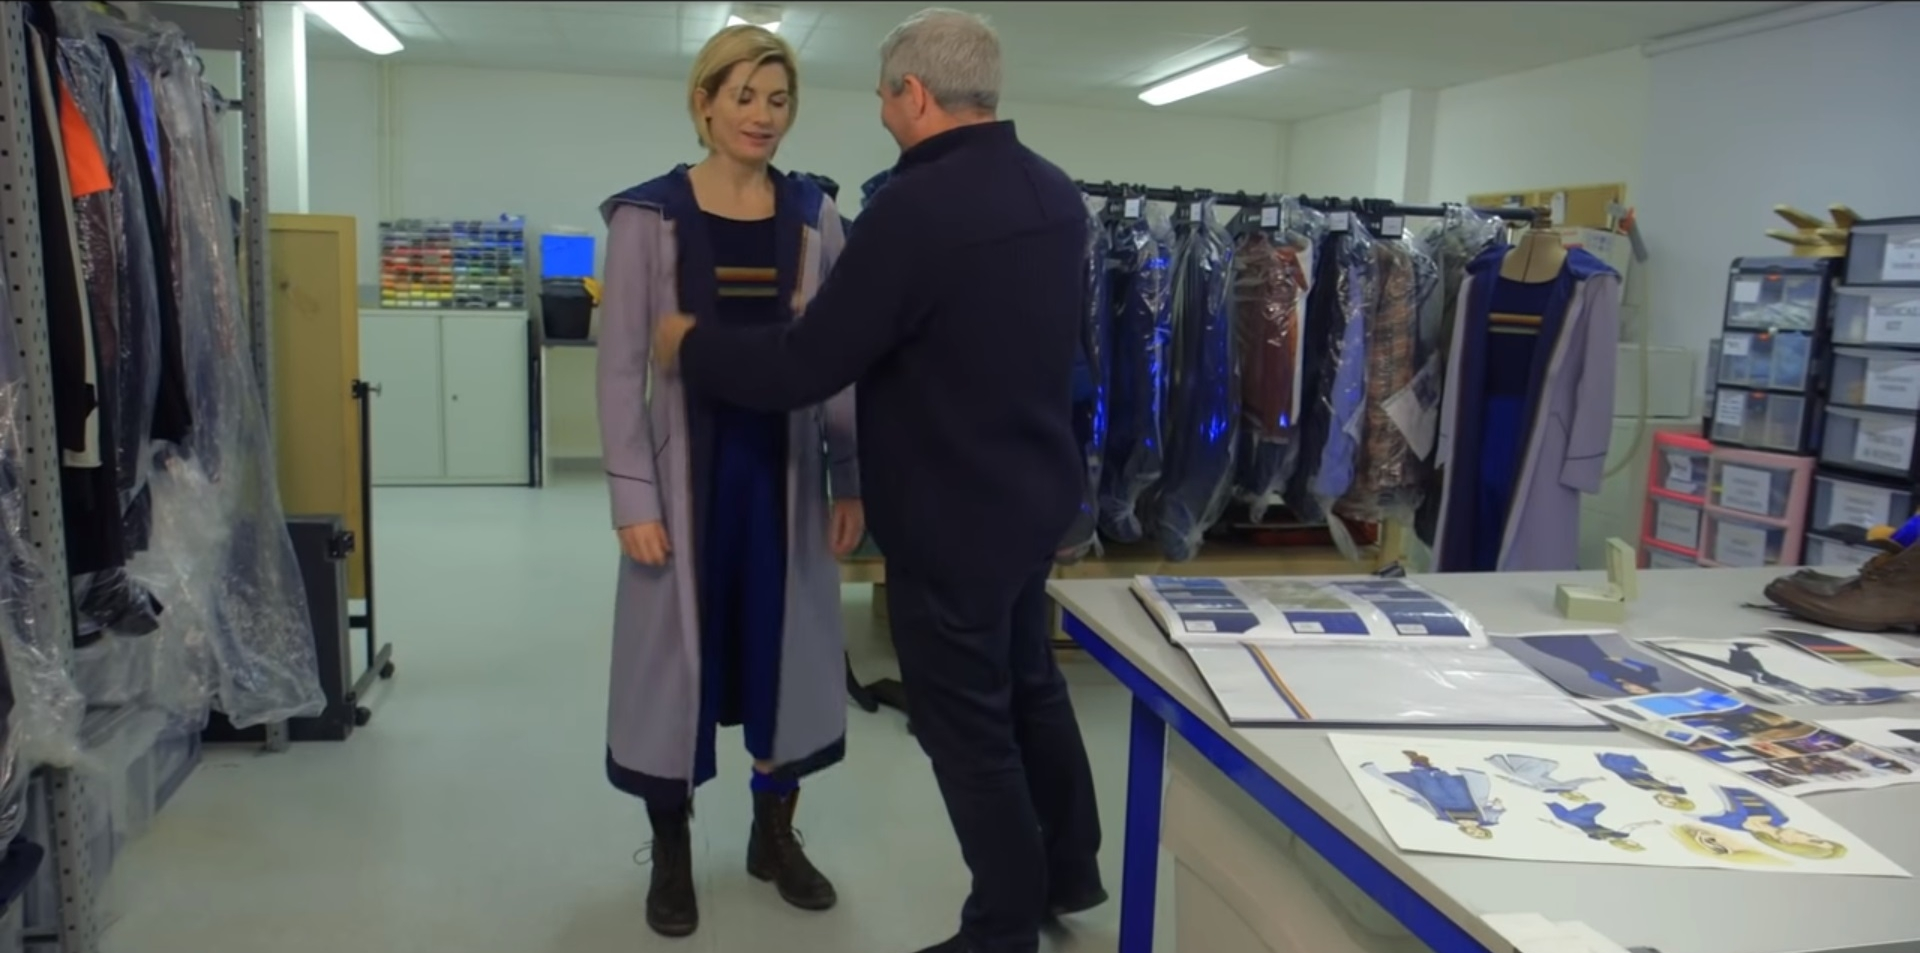 watch-doctor-who-video-explains-the-new-costumes-design-and-significance-social.jpg